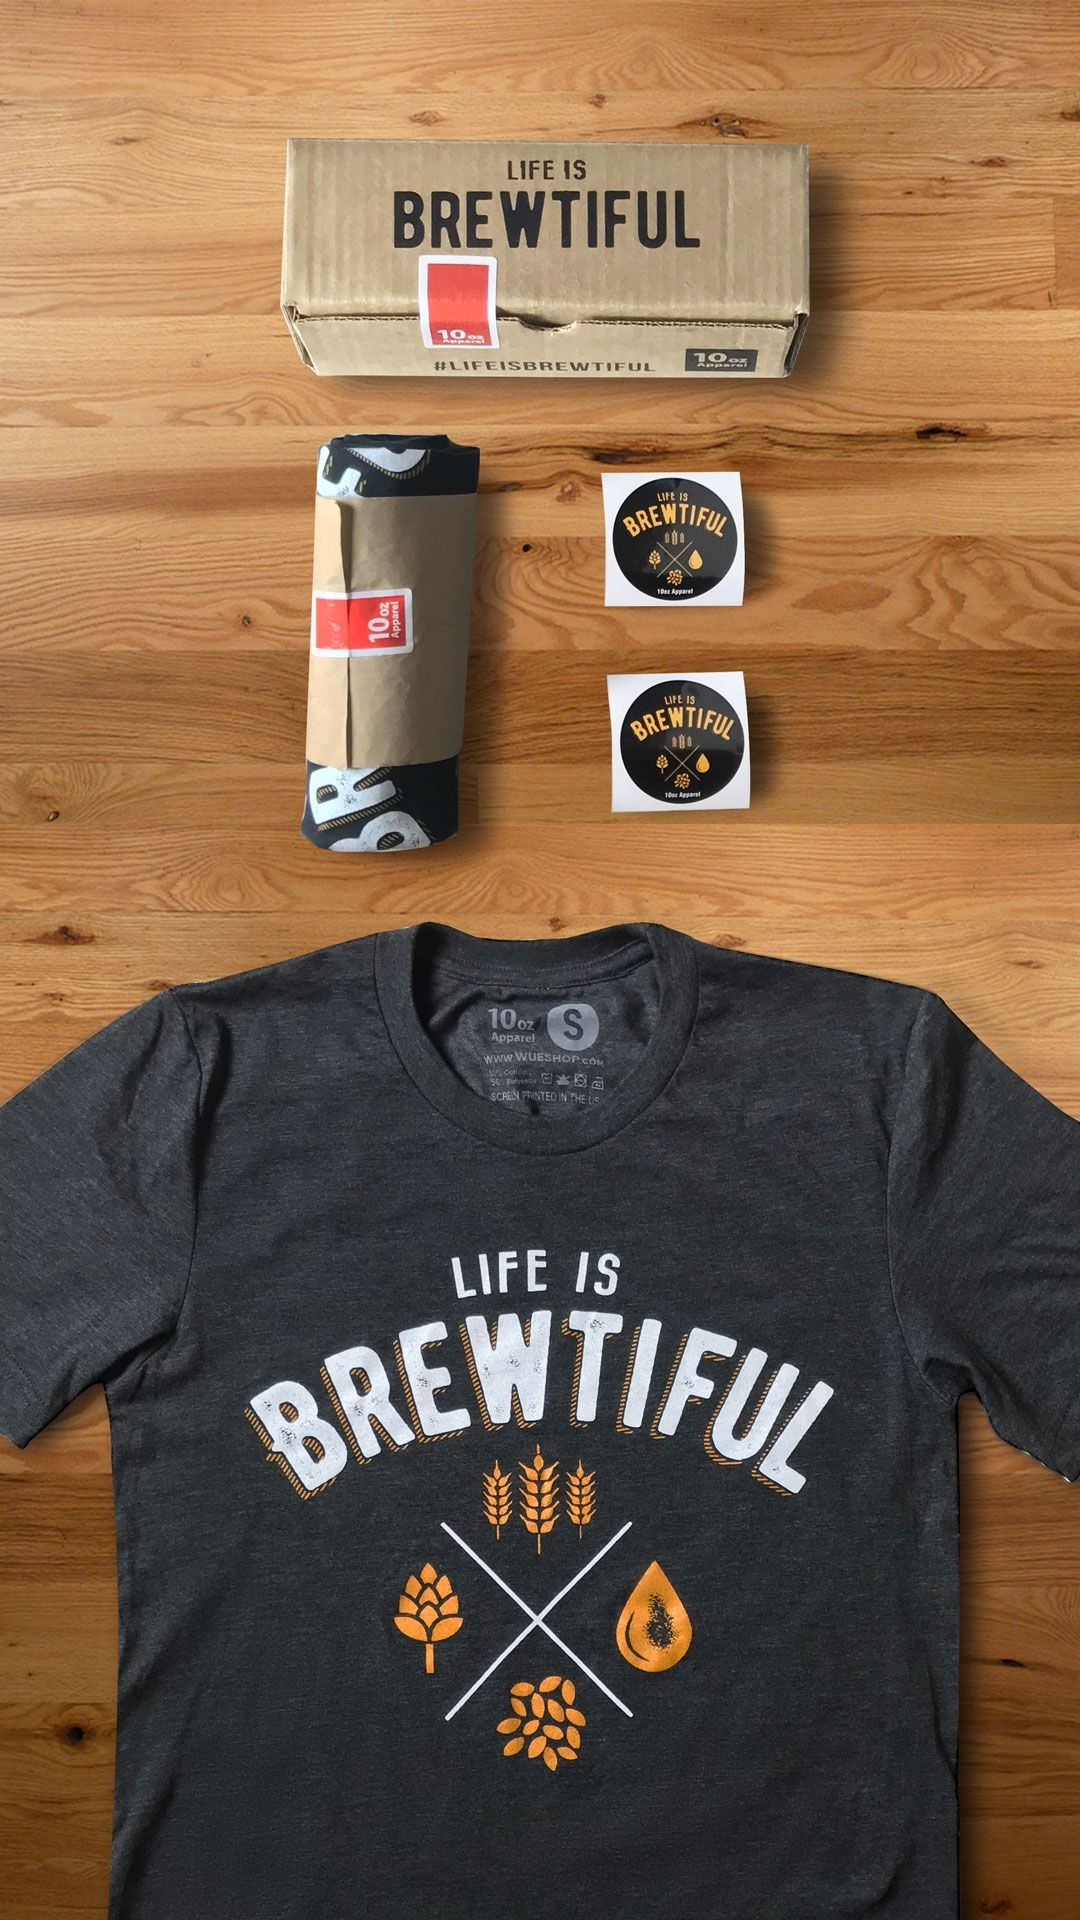 Life is Brewtiful t-shirt set. Comes with 2 stickers and branded box. Makes the perfect gift for someone who enjoys the craft beer lifestyle. Fitted Soft hand feel t shirt with vintage looking beer design screen printed.